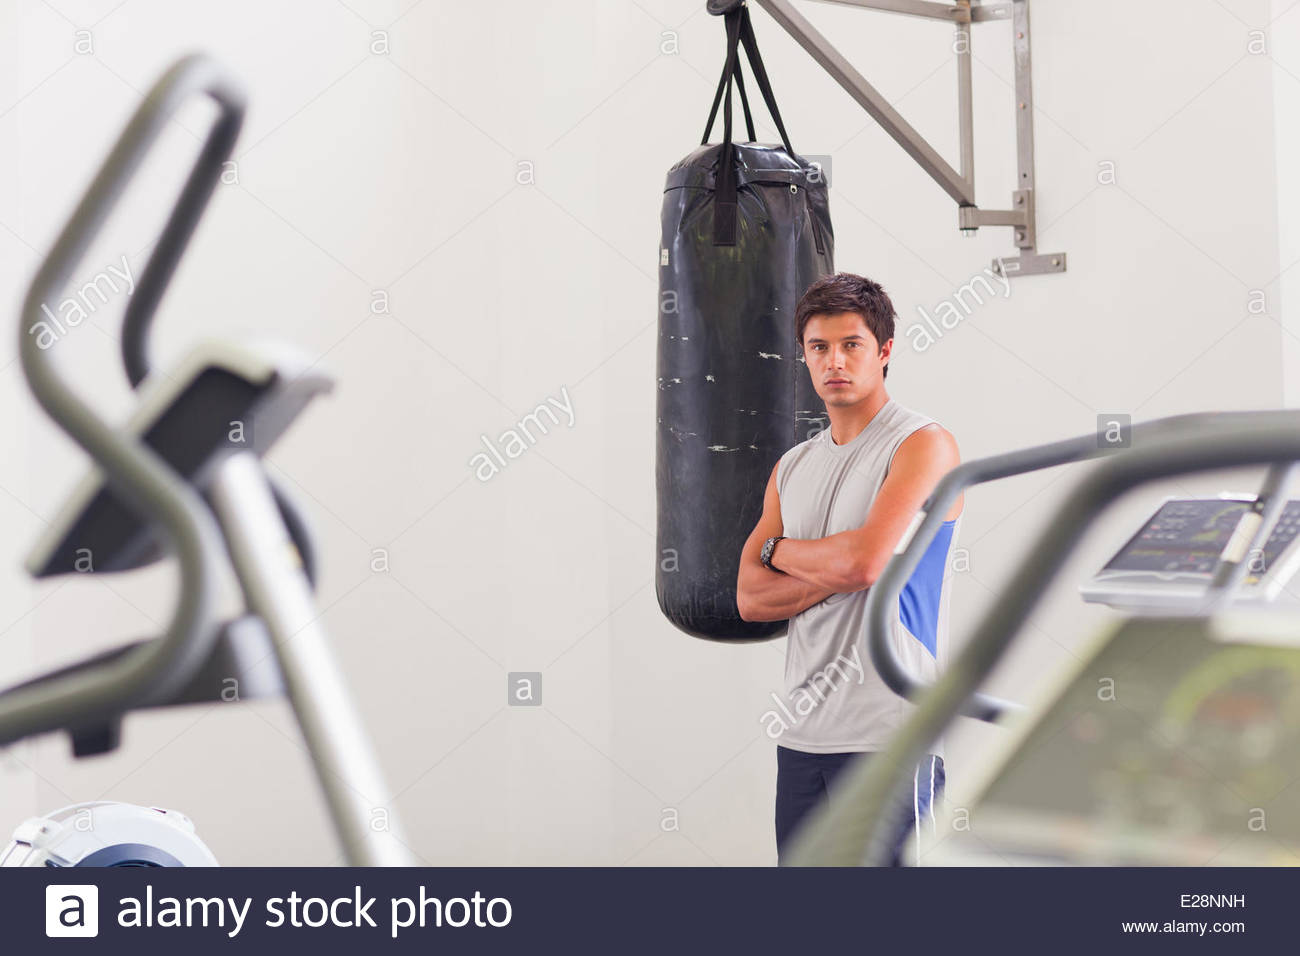 Portrait of man standing at punching bag in gymnasium - Stock Image